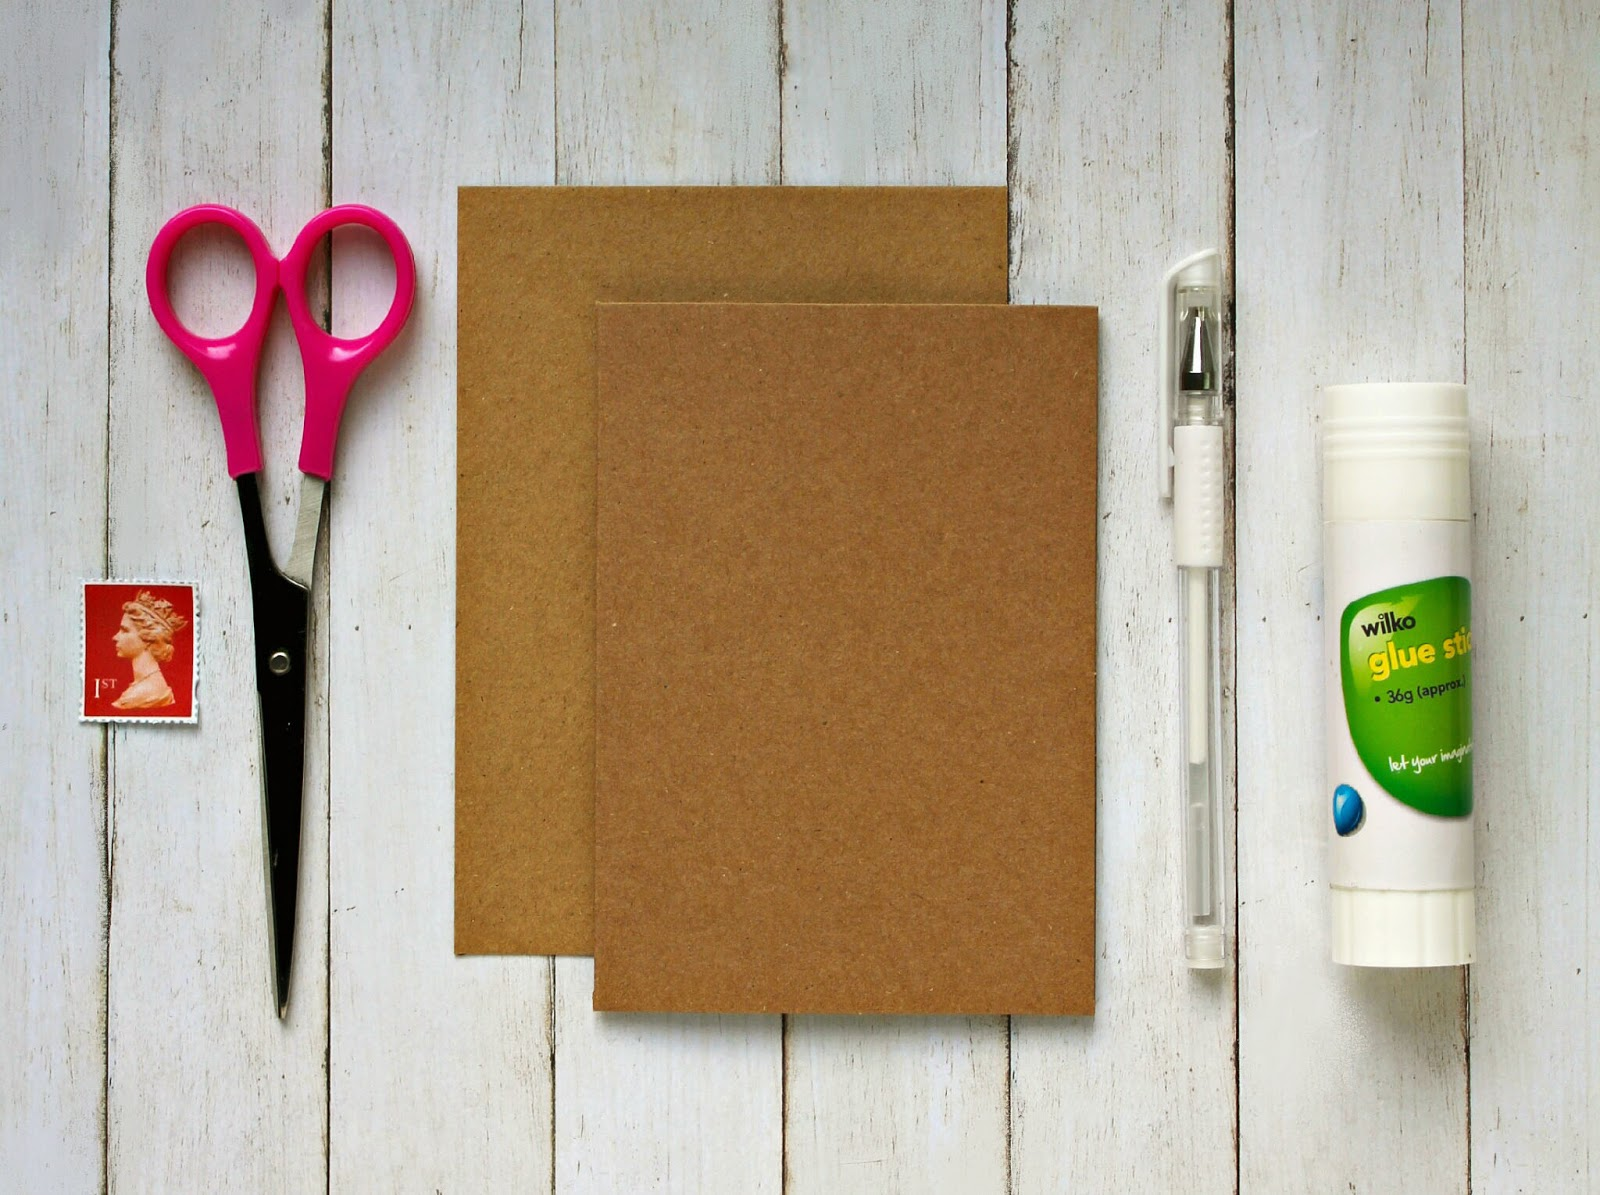 Easy peasy diy stamp card for mail lovers | Rose Tinted Crafting